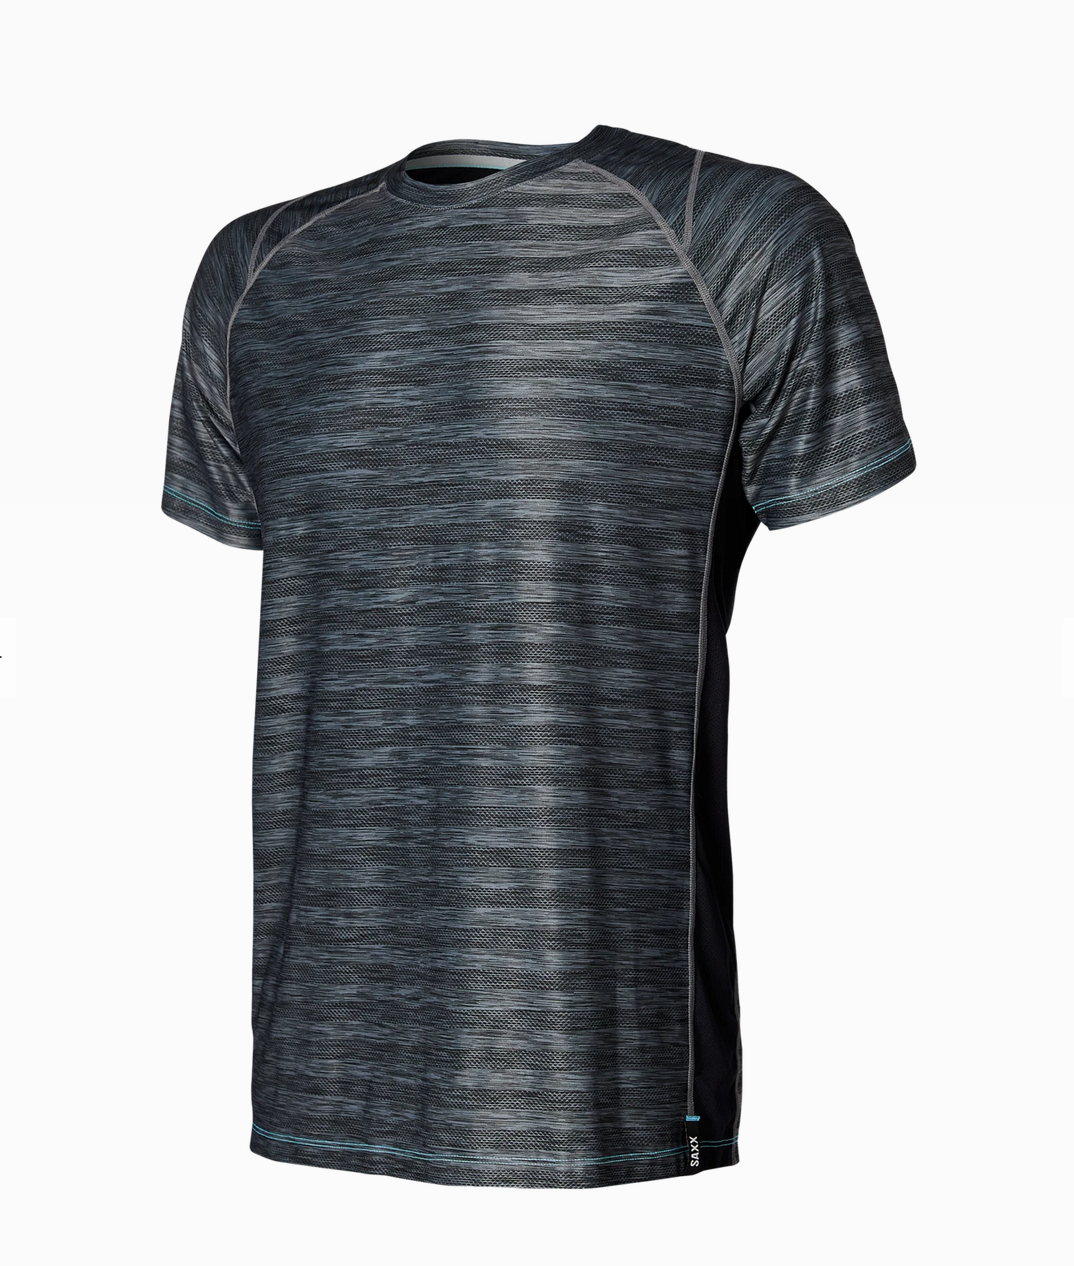 Men's Hot Shot T-1